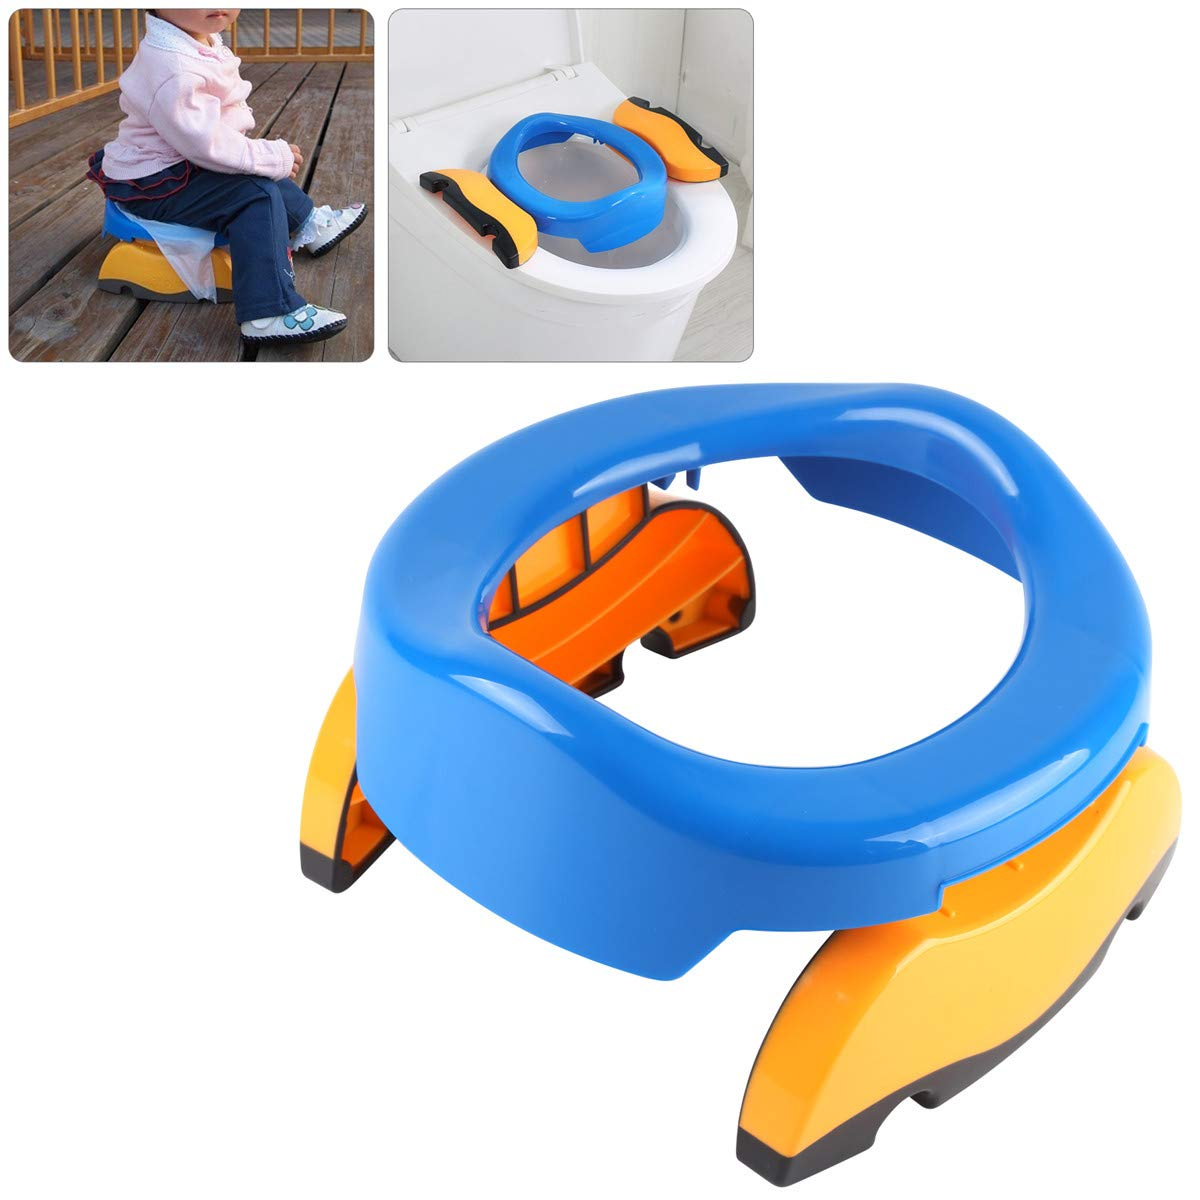 MultiWare Baby Travel Potty Chair 2 in 1 Toilet Training Seat Portable Foldable Multifunctional Eco-Friend Stool